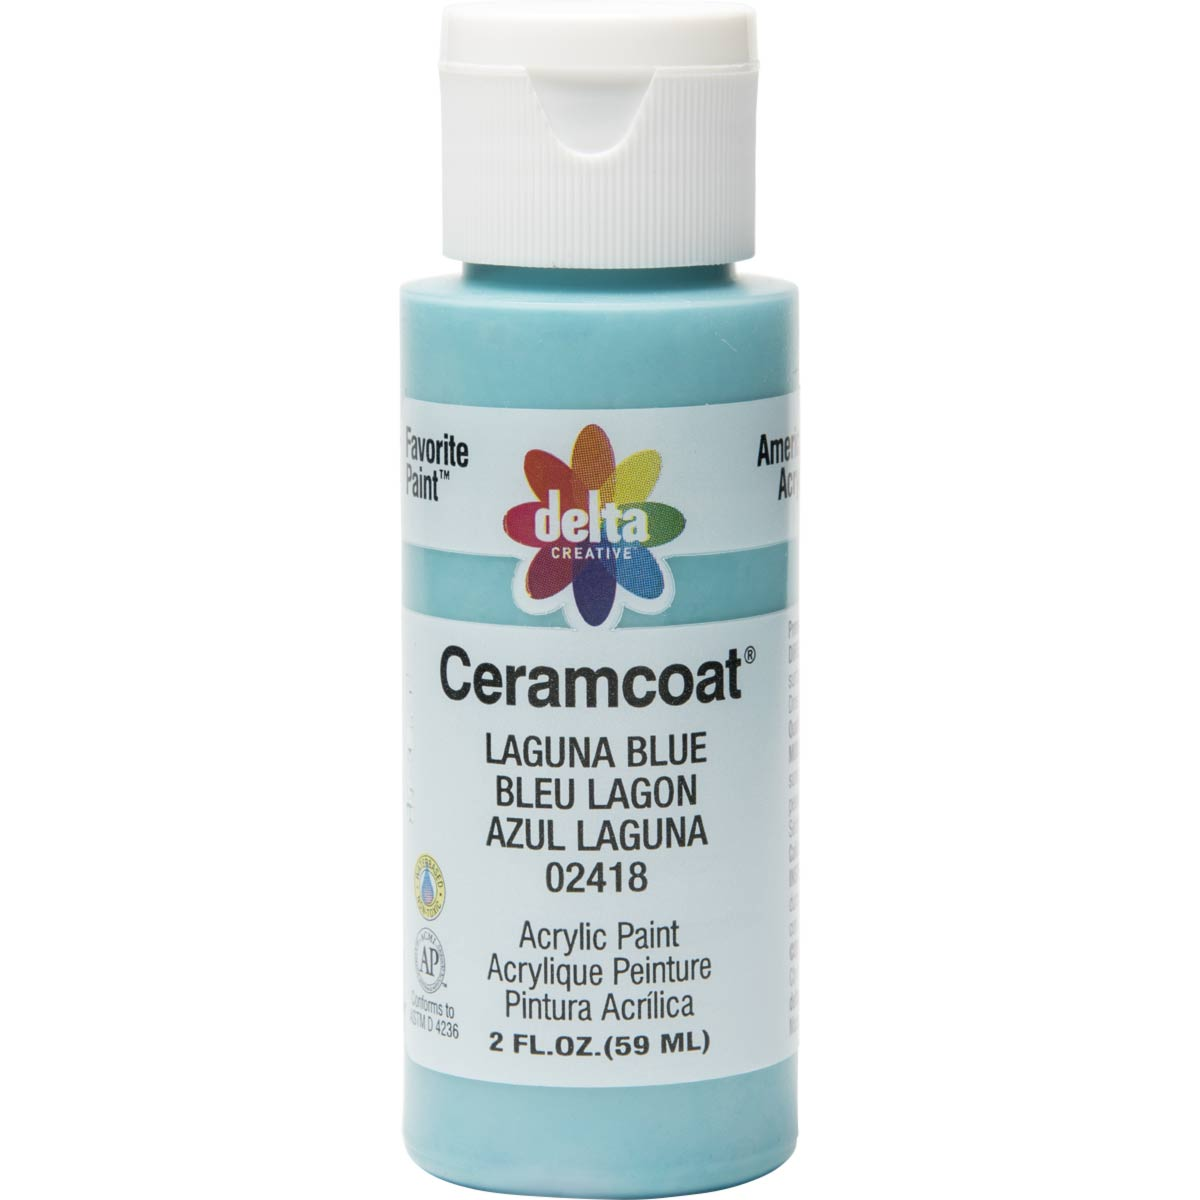 Delta Ceramcoat ® Acrylic Paint - Laguna Blue, 2 oz.